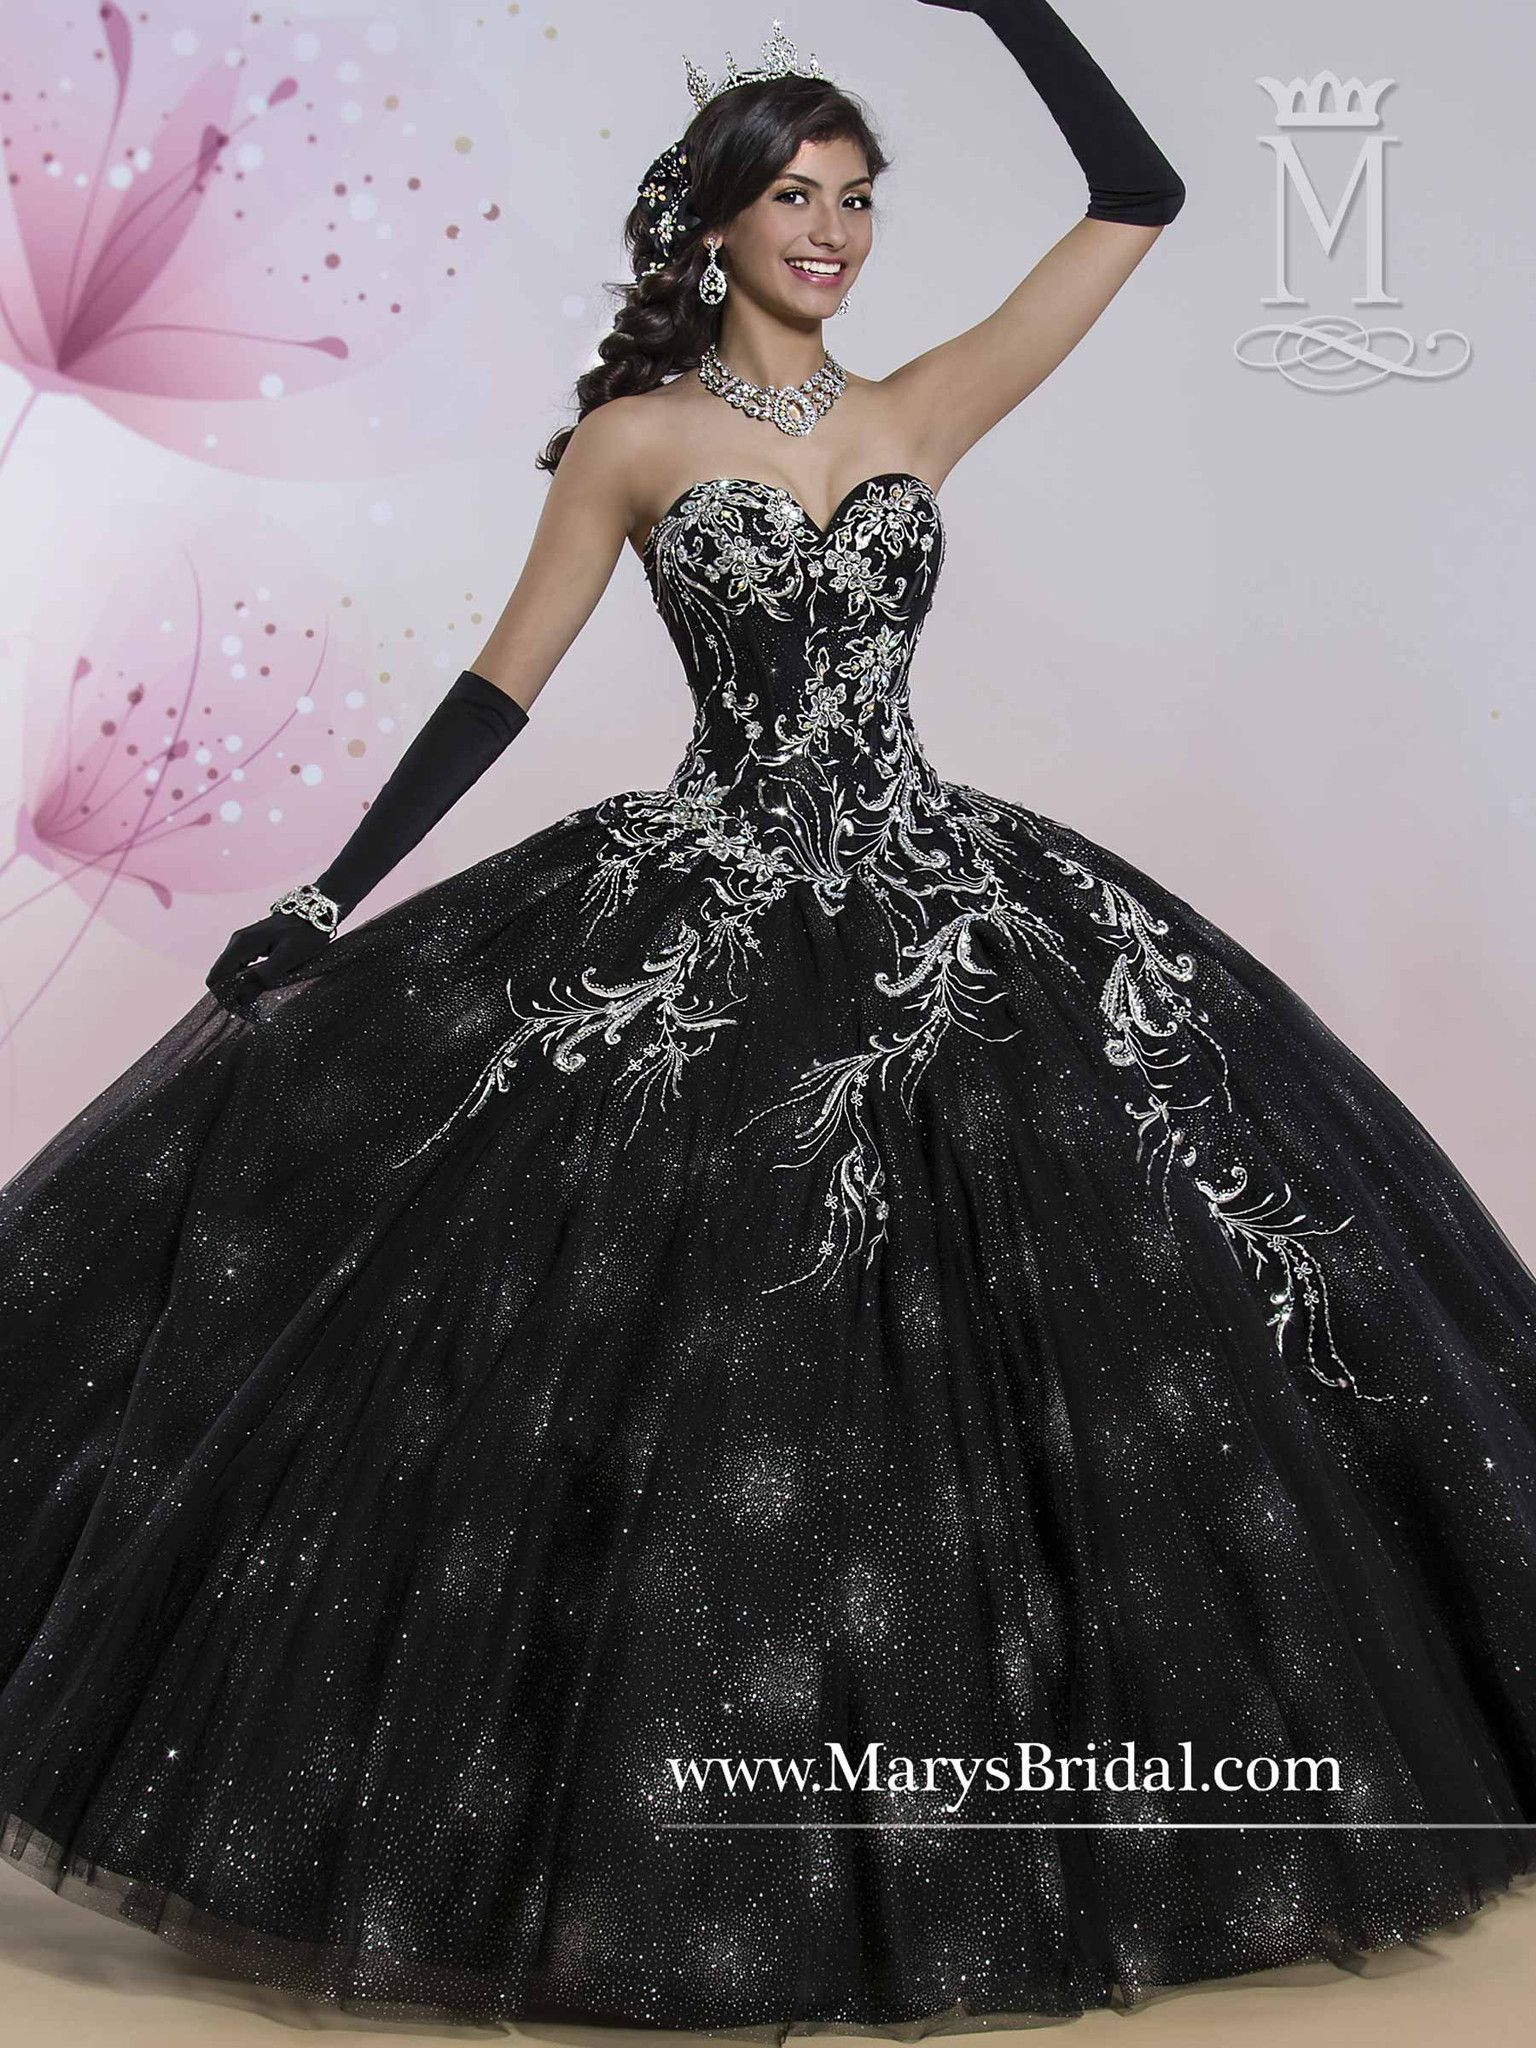 58898622a83 Mary s Bridal Princess Collection Quinceanera Dress Style 4Q410 ...